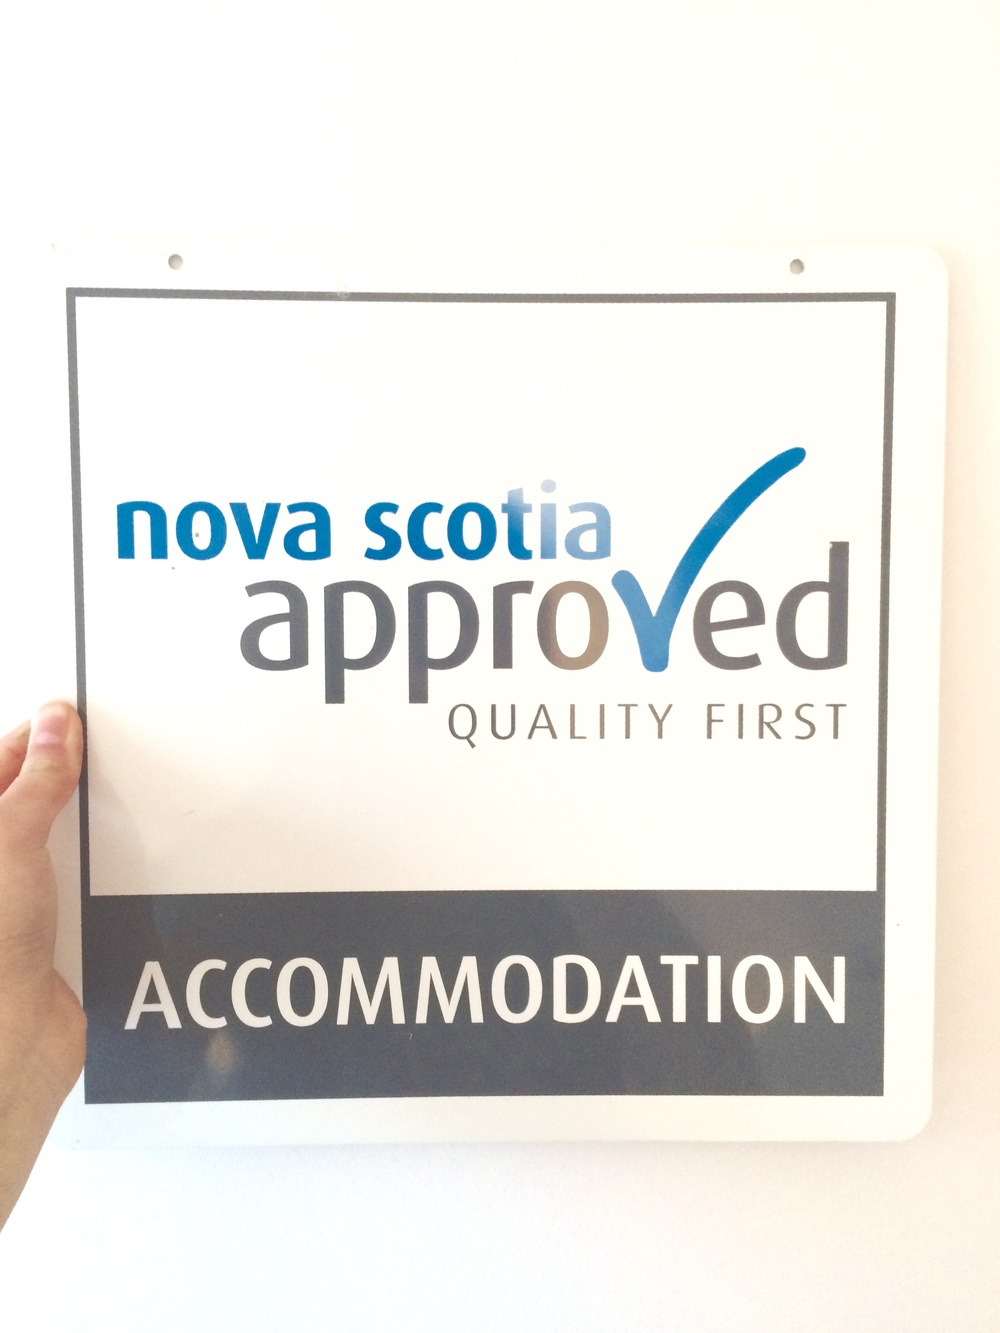 It's official! We are now Nova Scotia Approved!